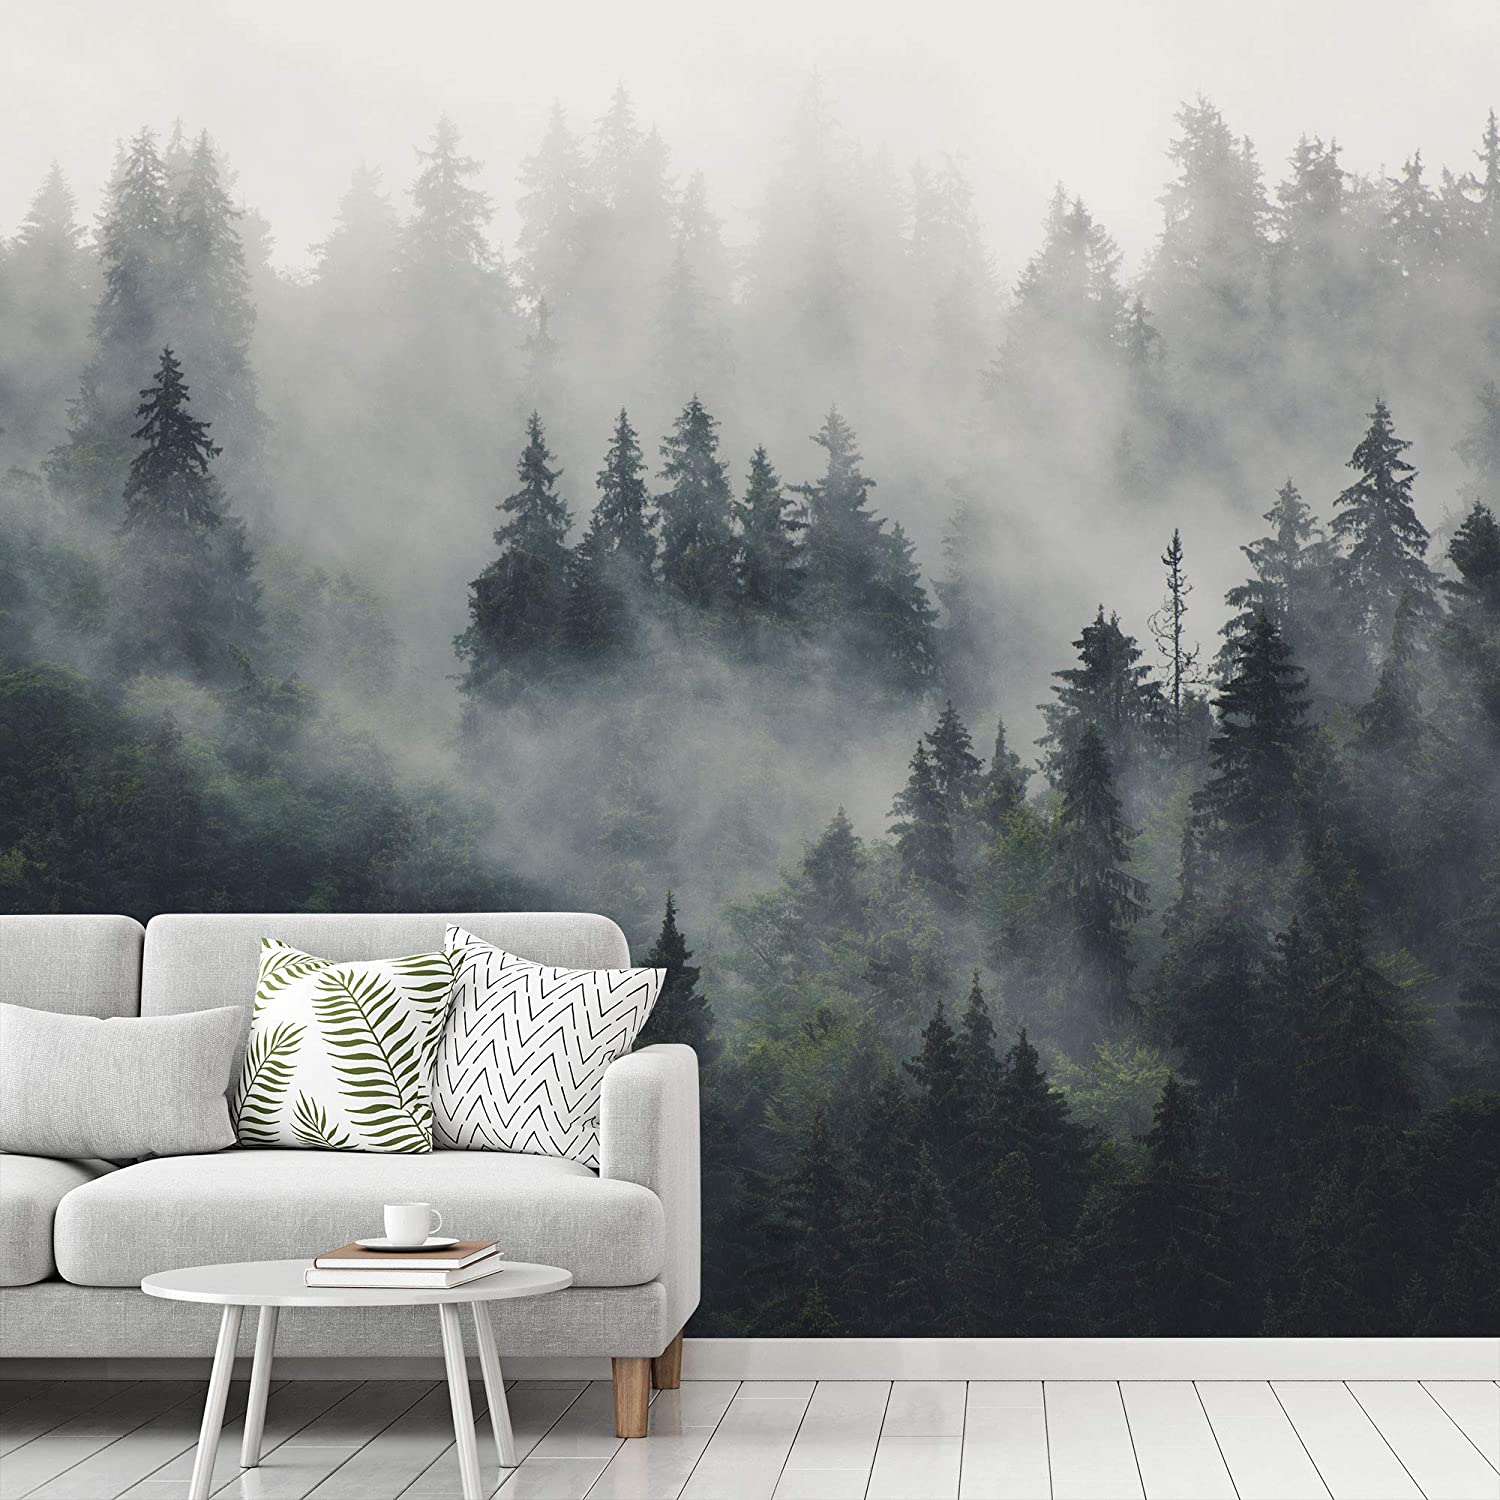 Buy Signwin Wall Mural Foggy Forest Removable Self Adhesive Wallpaper Wall Decoration For Bedroom Living Room 66x96 Inches Online In Turkey B08gbszjj3